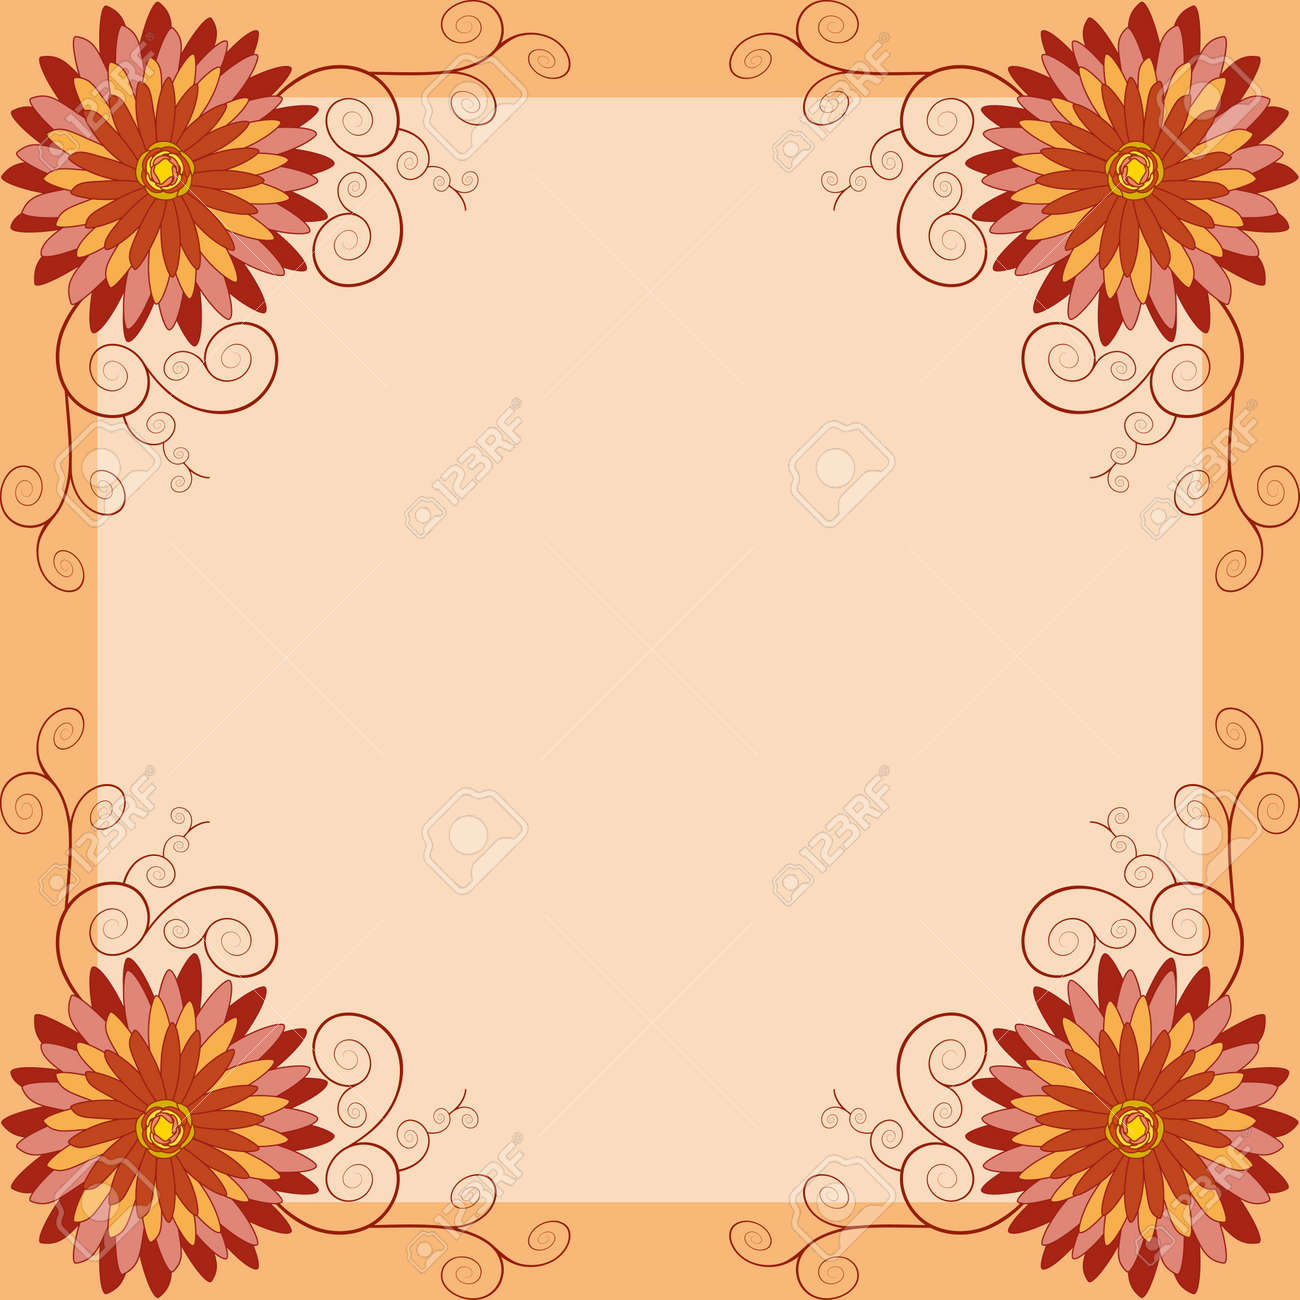 Background with orange red yellow flower chrysanthemum and swirl background with orange red yellow flower chrysanthemum and swirl invitation greeting card in vintage or stopboris Image collections